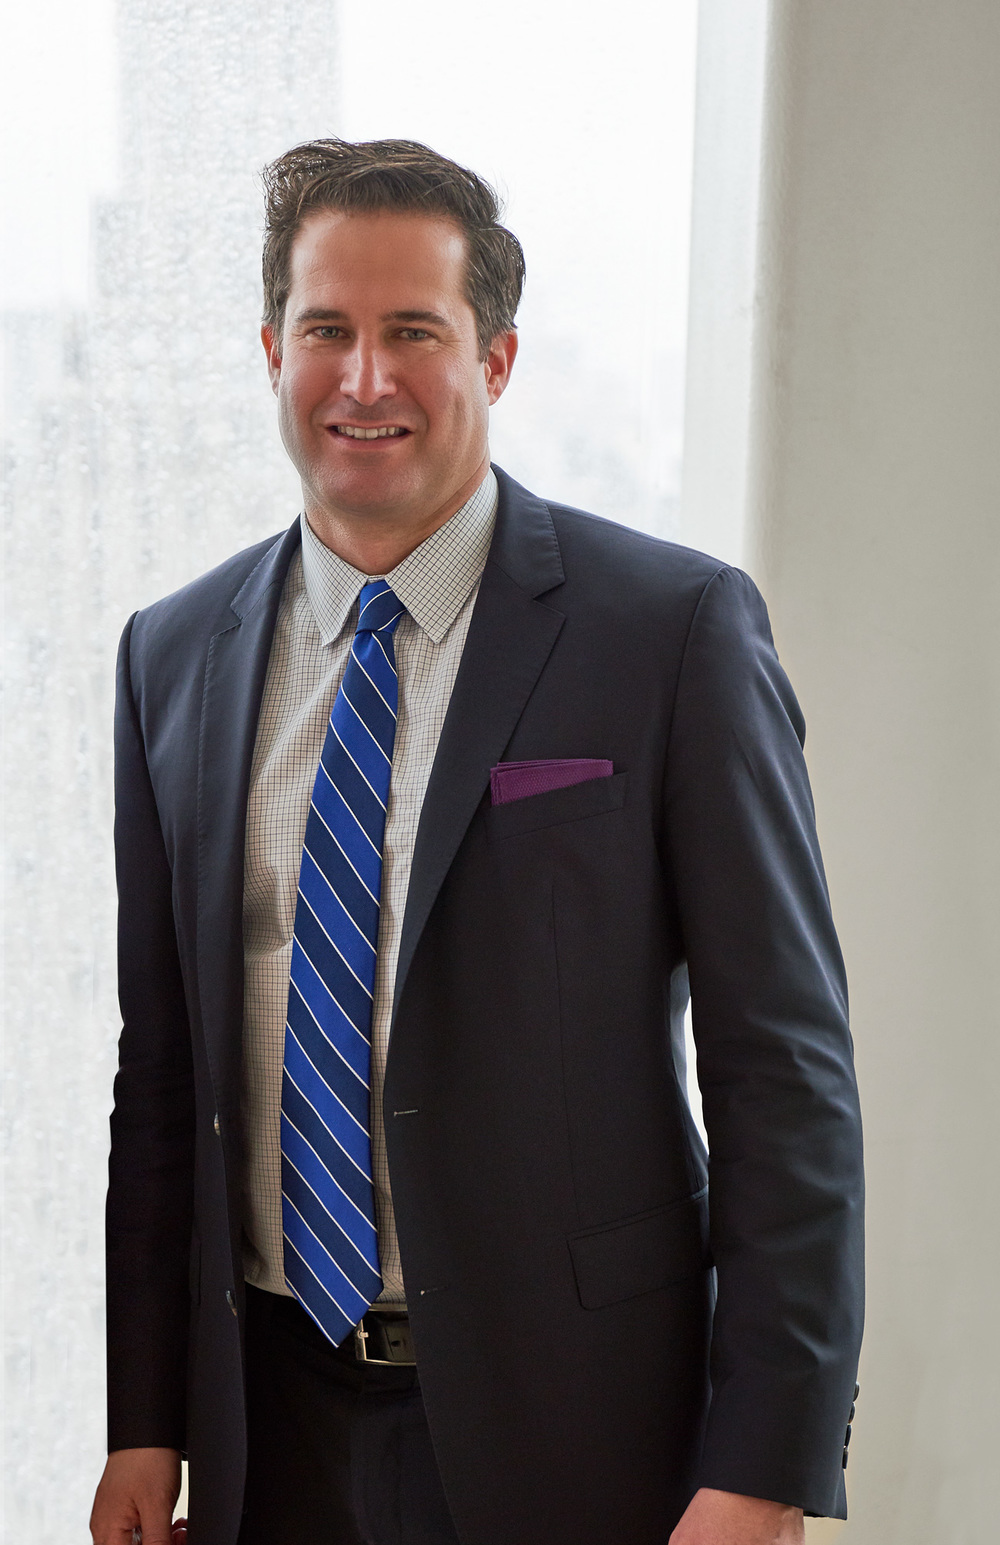 U.S. Representative Seth Moulton , 6th Congressional District of Massachusetts.